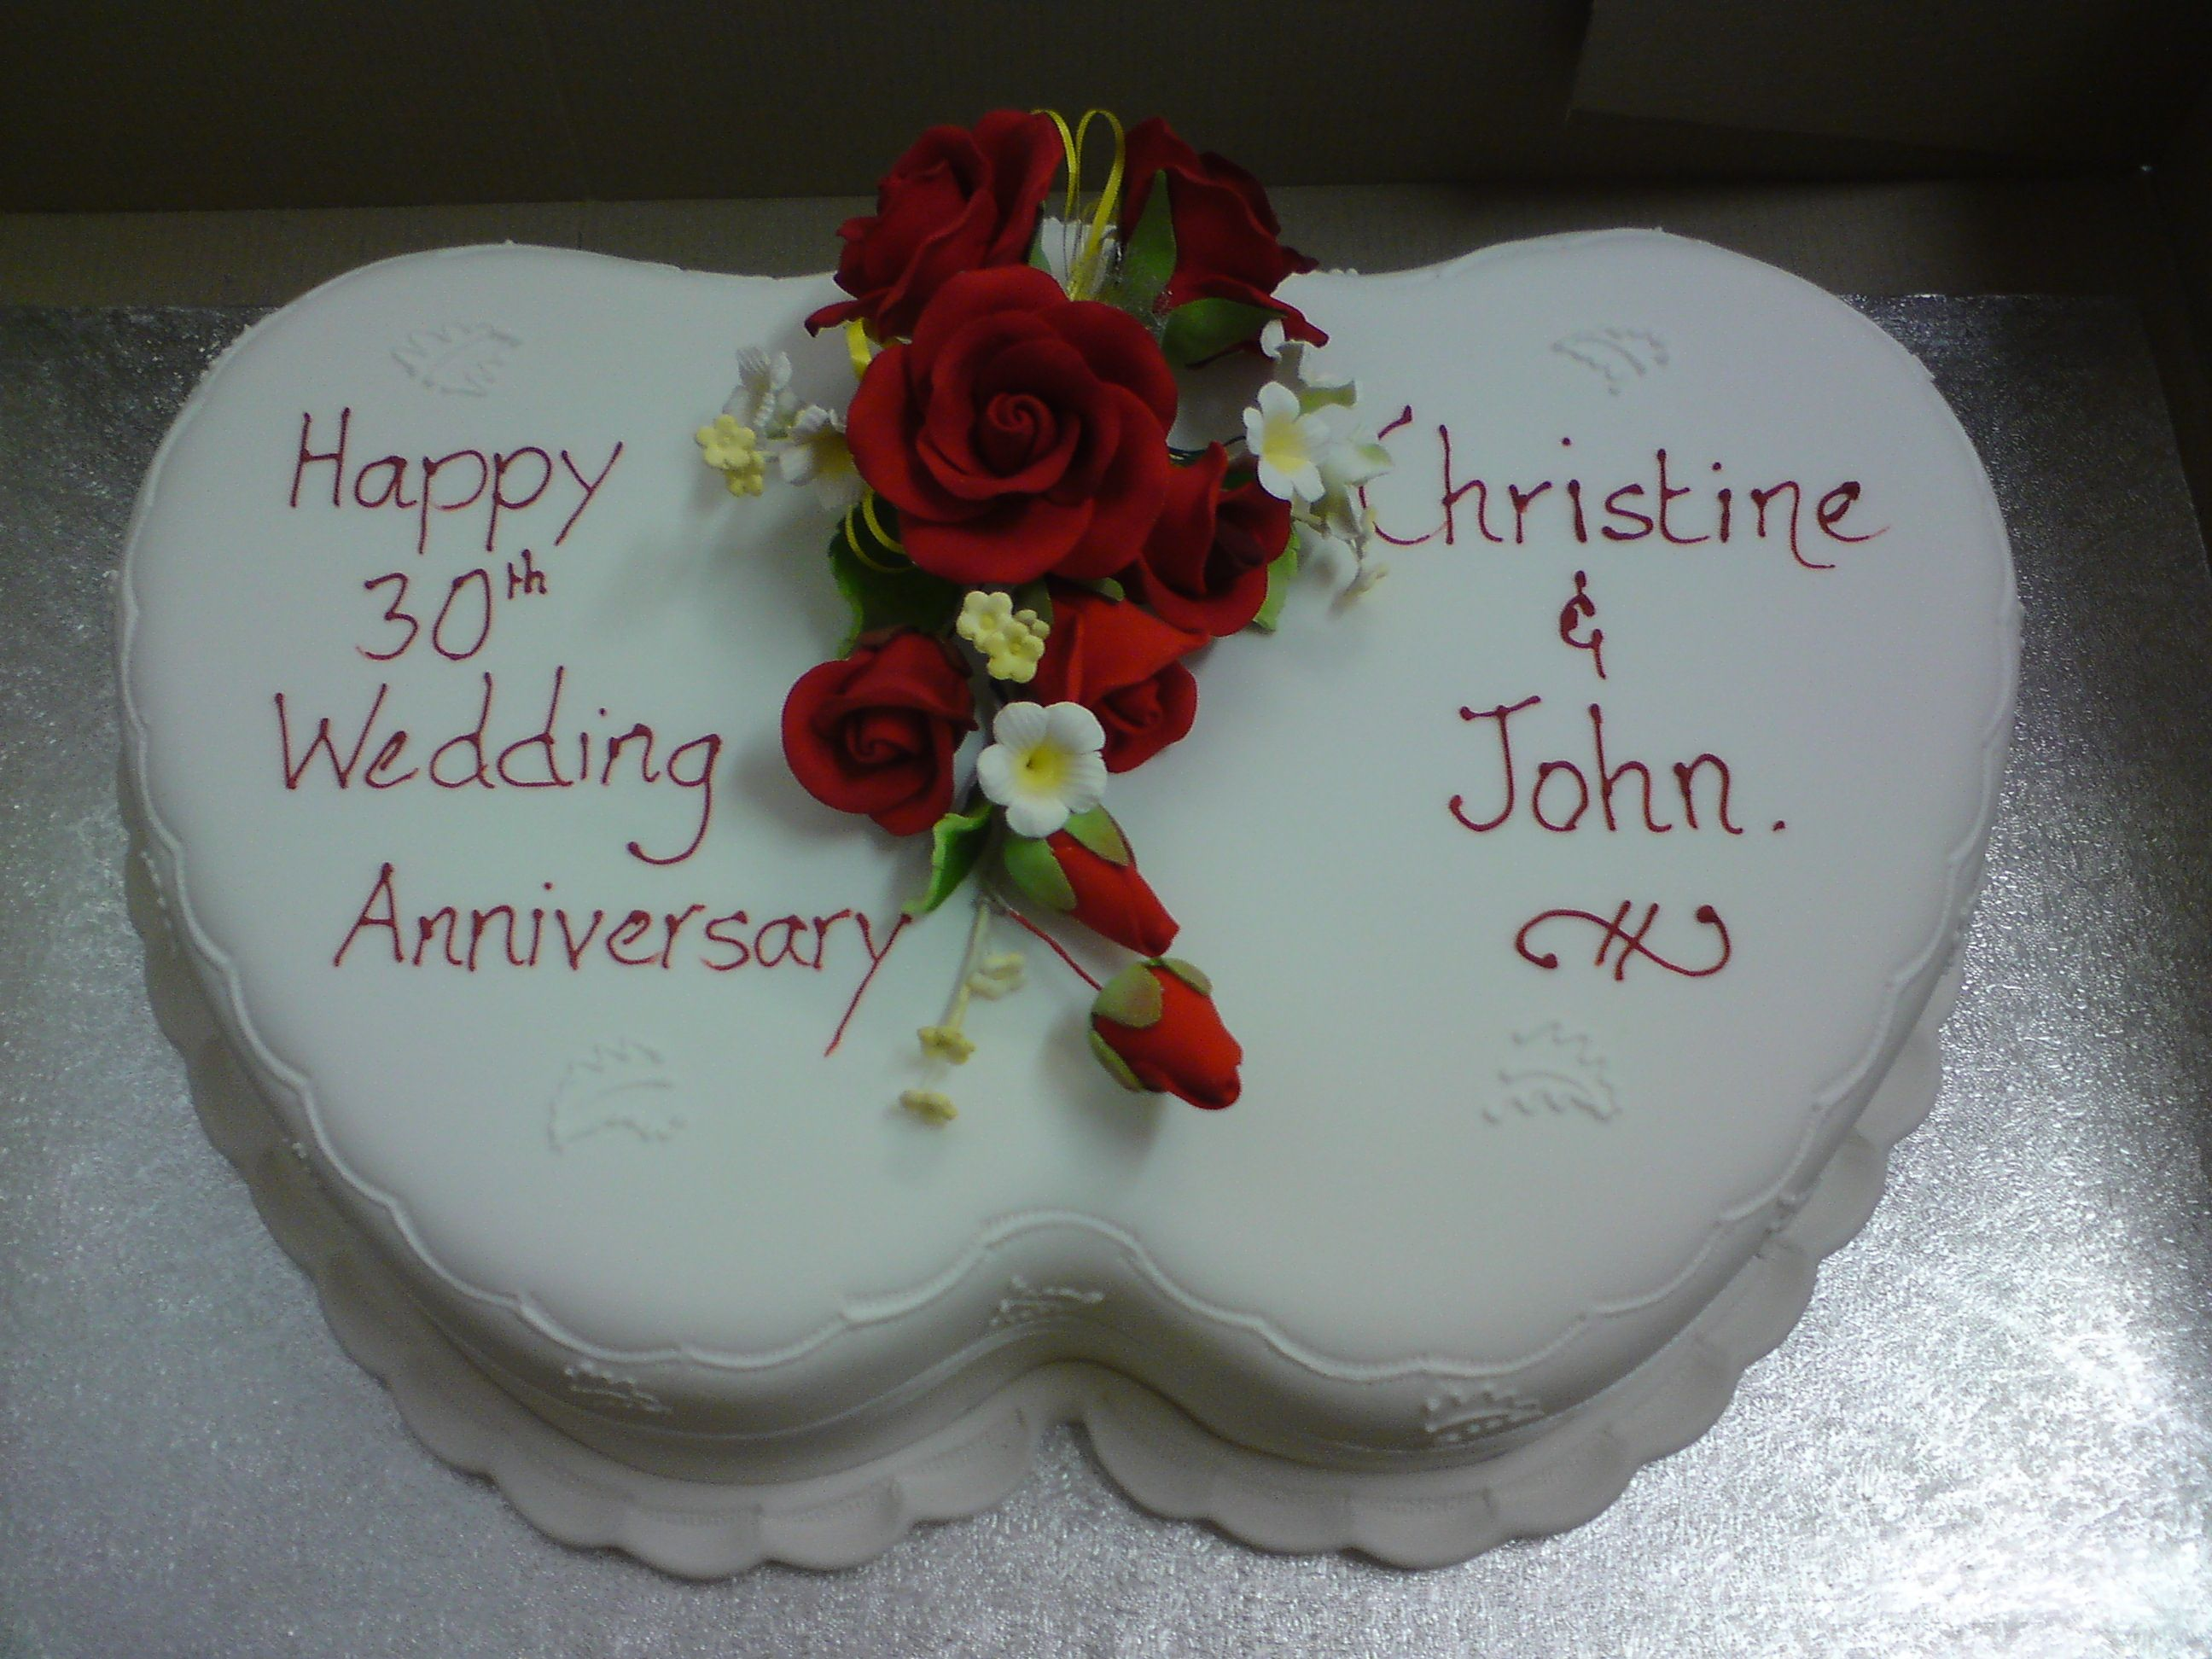 Wedding anniversary cake, two hearts with floral